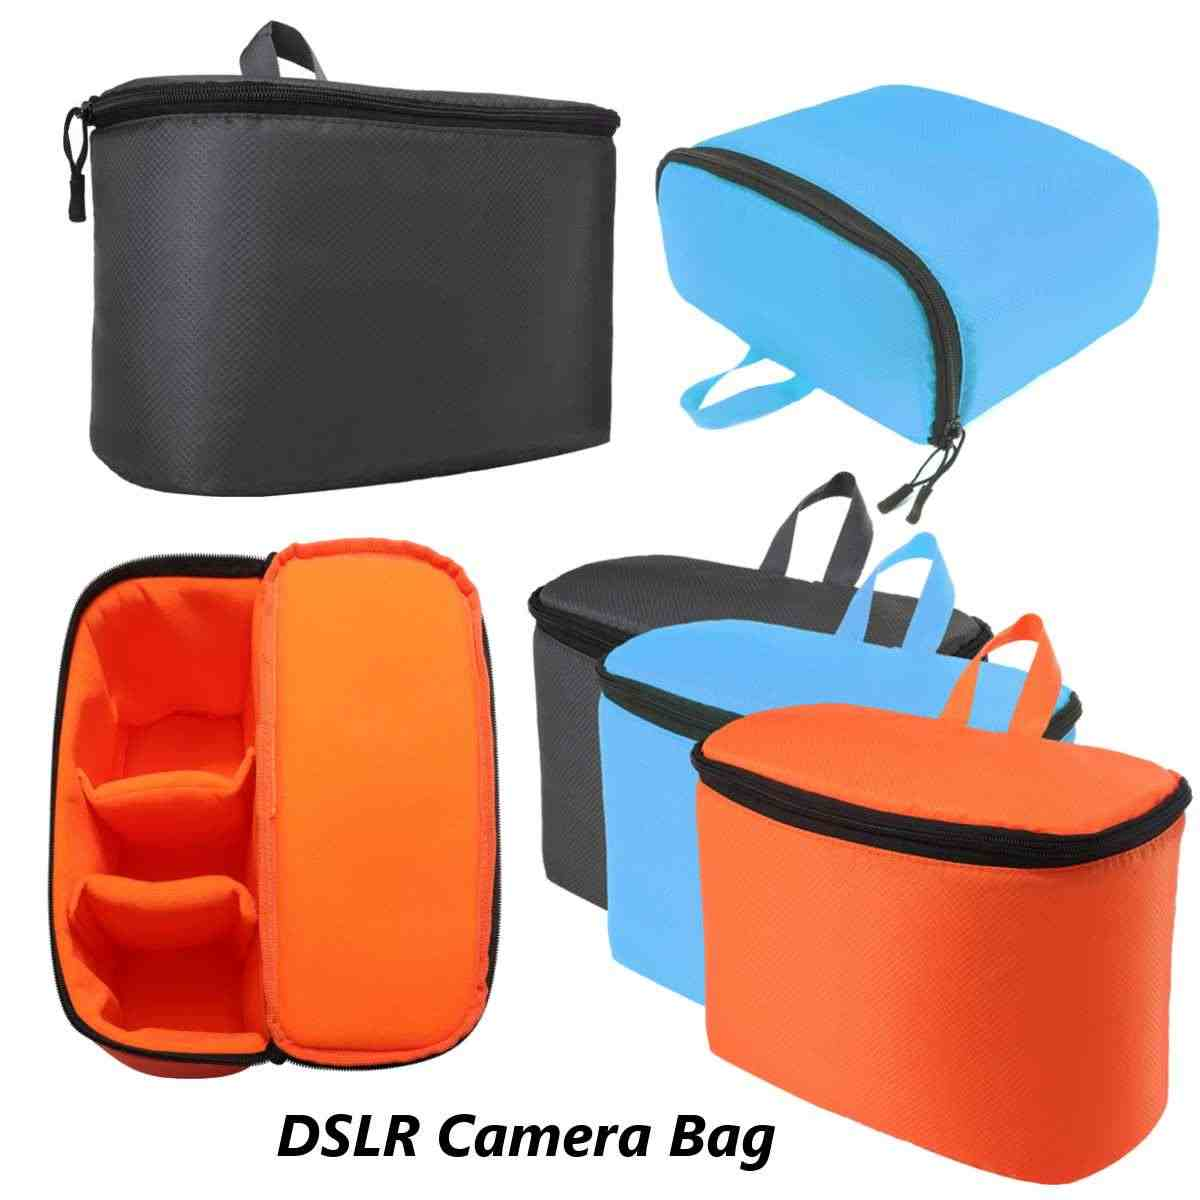 Waterproof DSLR SLR Camera Lens Bag Partition Padded Insert Inner Divider Photo Lens Case Pouch Portable Organizer 3 Colors